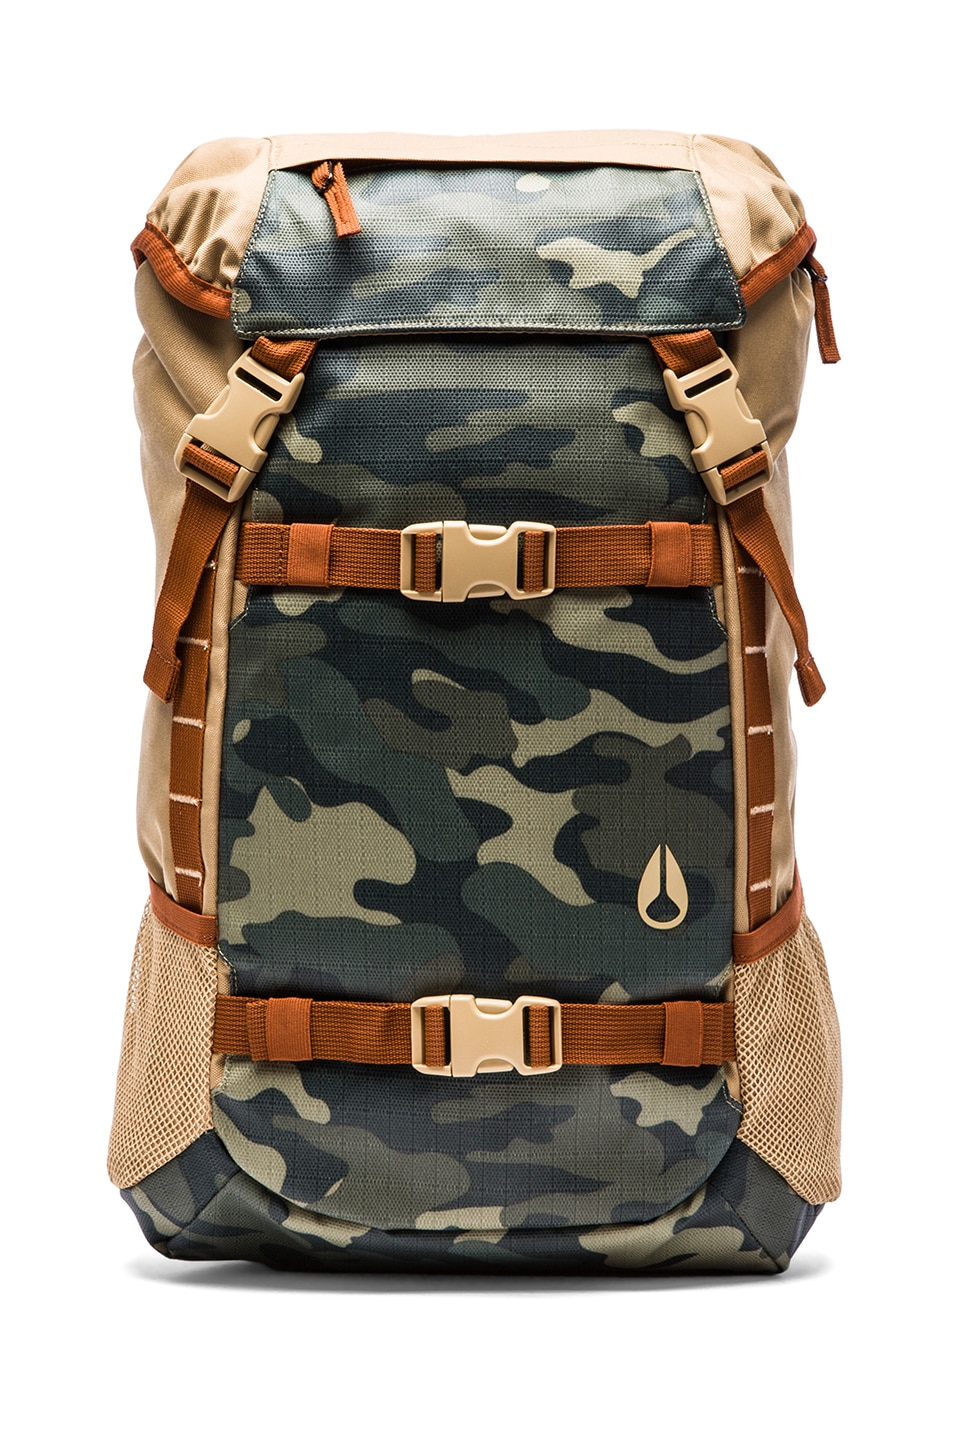 Nixon Landlock Backpack in Khaki/ Surplus Camo